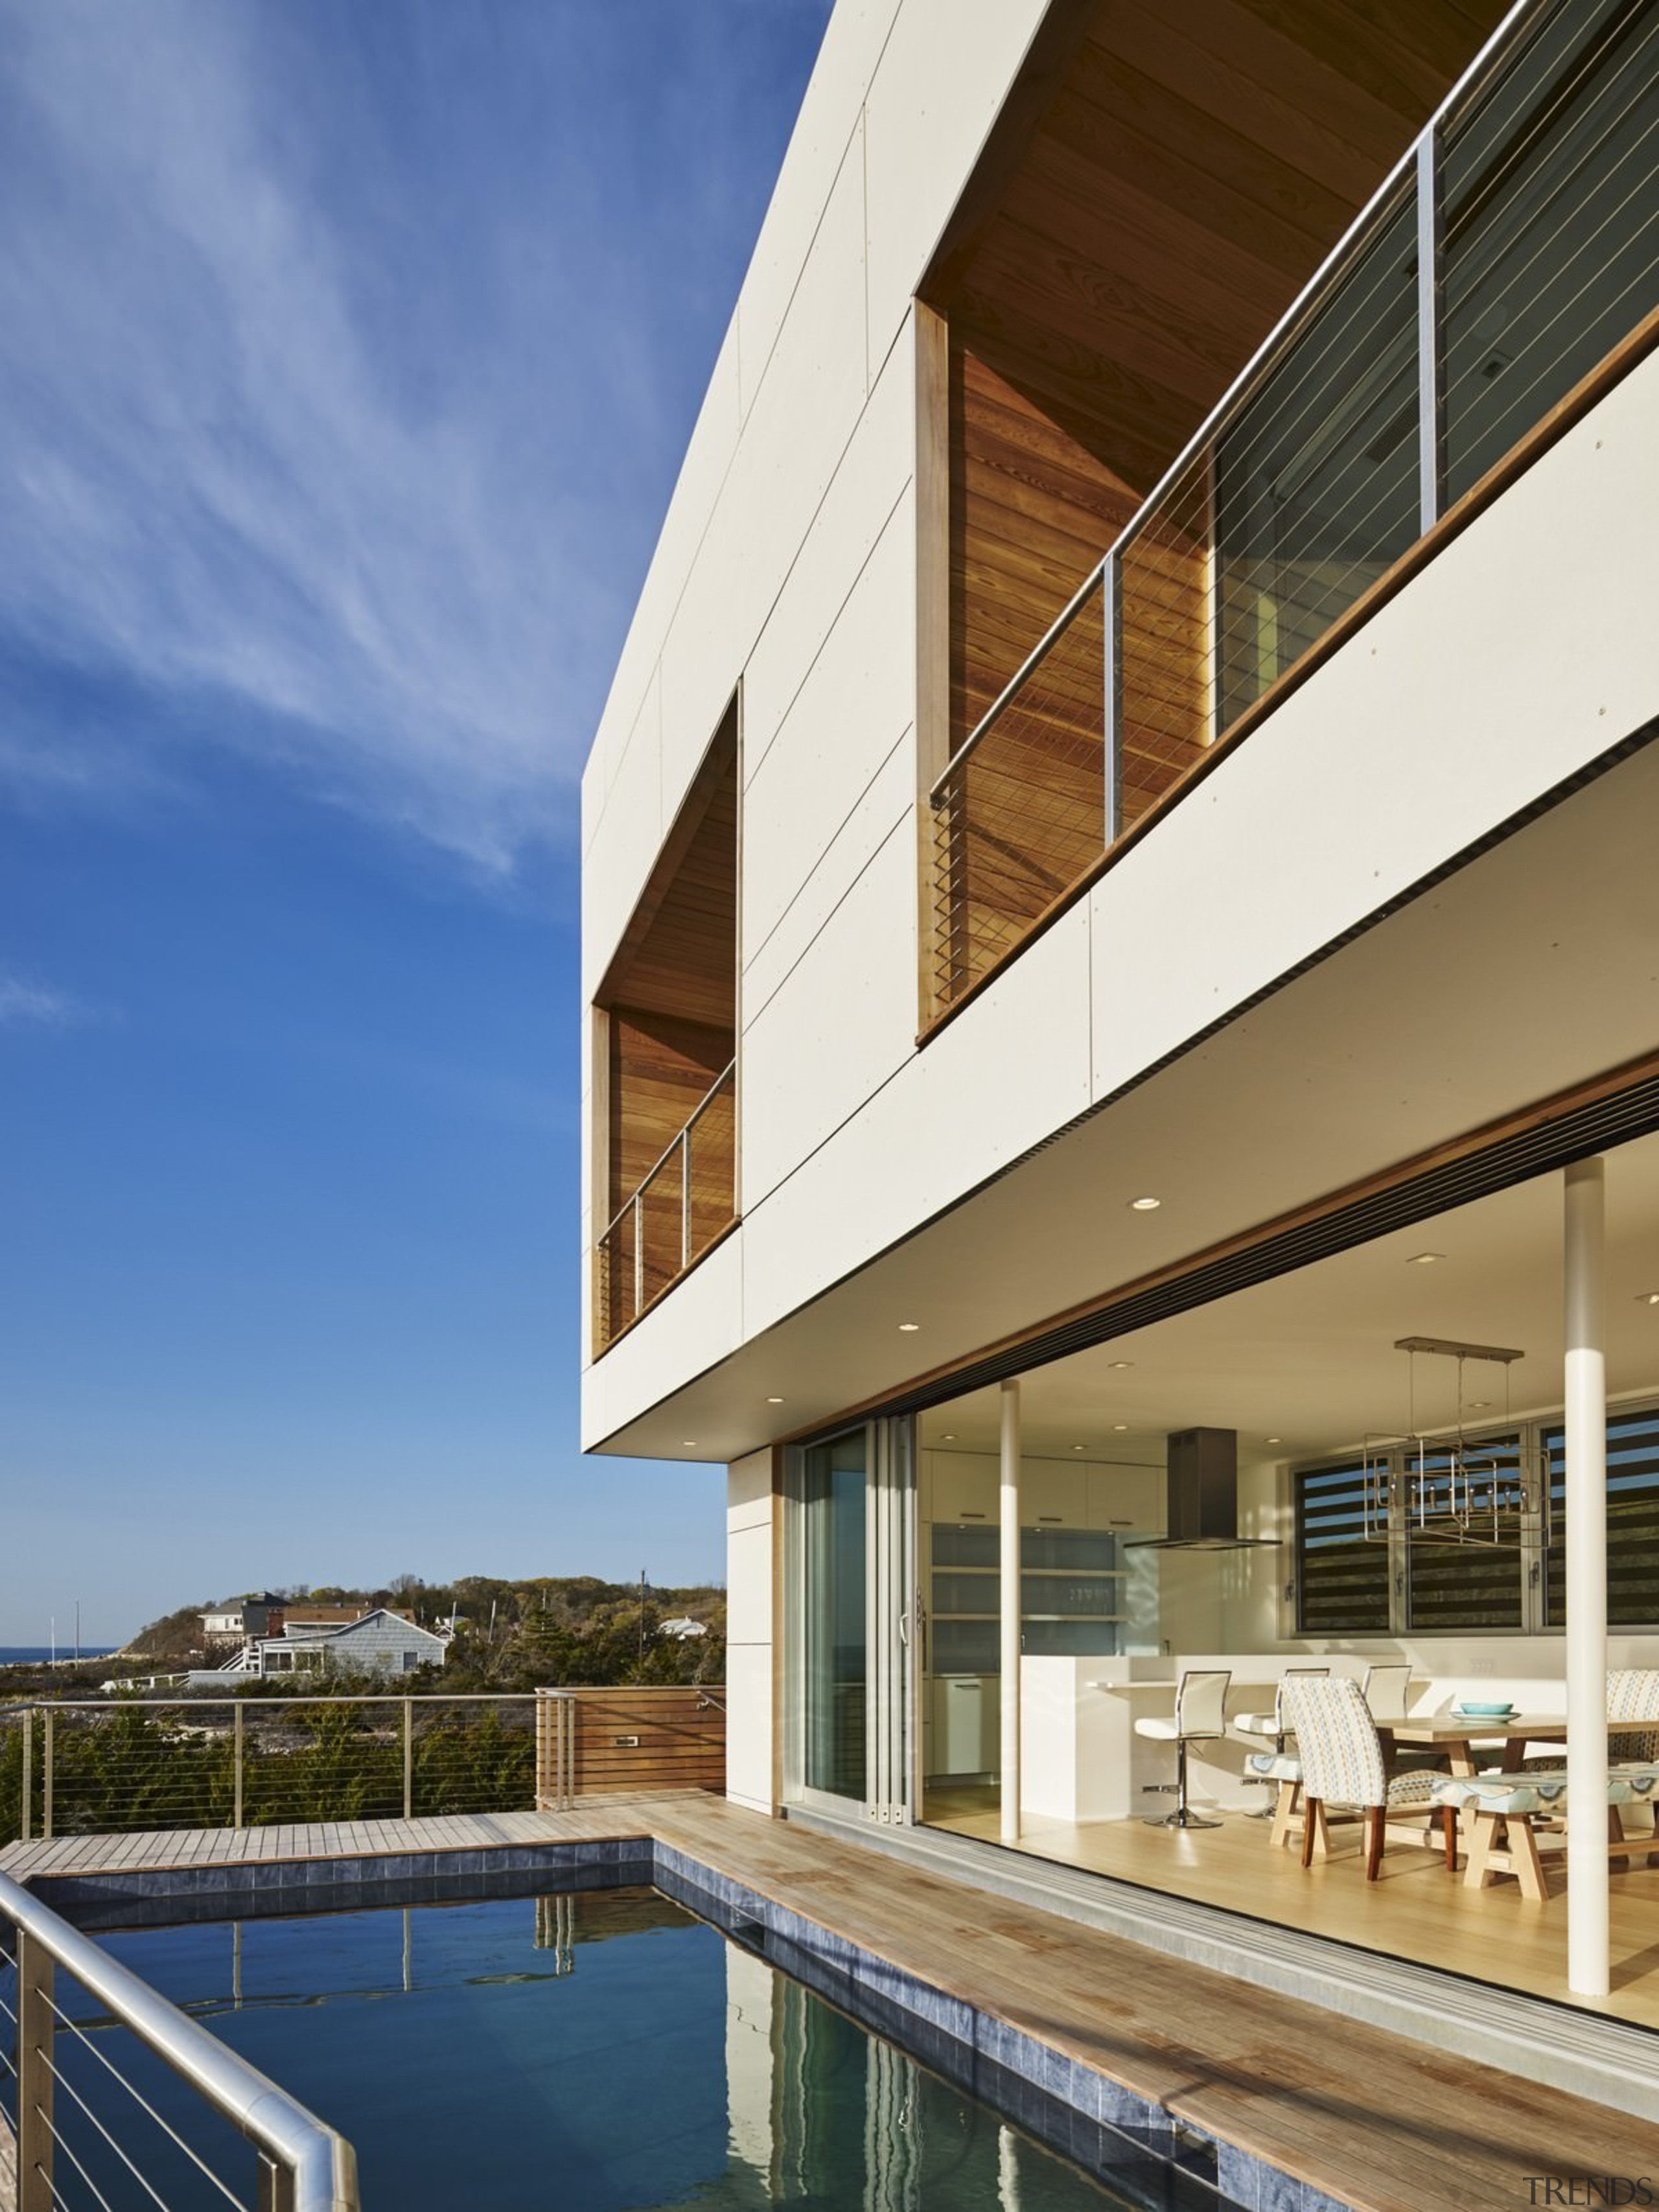 Wood panels and wood soffits line the upper apartment, architecture, building, condominium, corporate headquarters, daylighting, estate, facade, home, house, property, real estate, reflection, residential area, sky, window, brown, blue